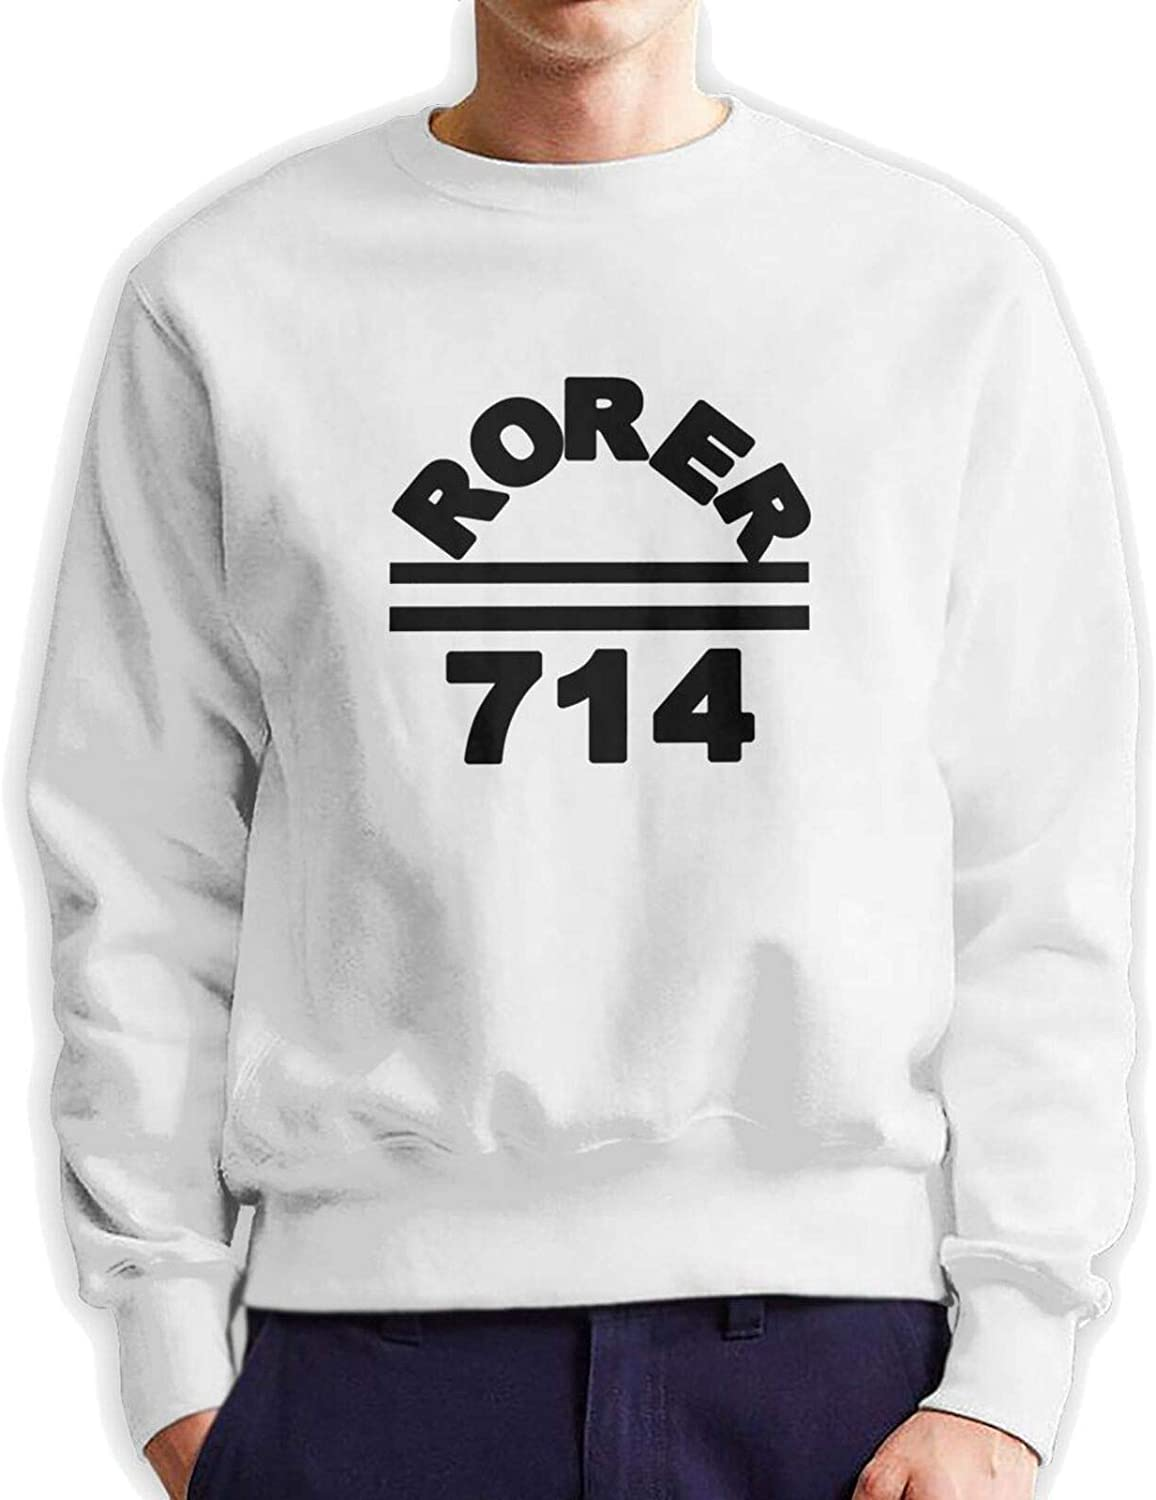 Rorer 714 Man'S Austin Mall Crew Neck Authentic Limited time cheap sale Hoodie Cotton Sweater Hooded